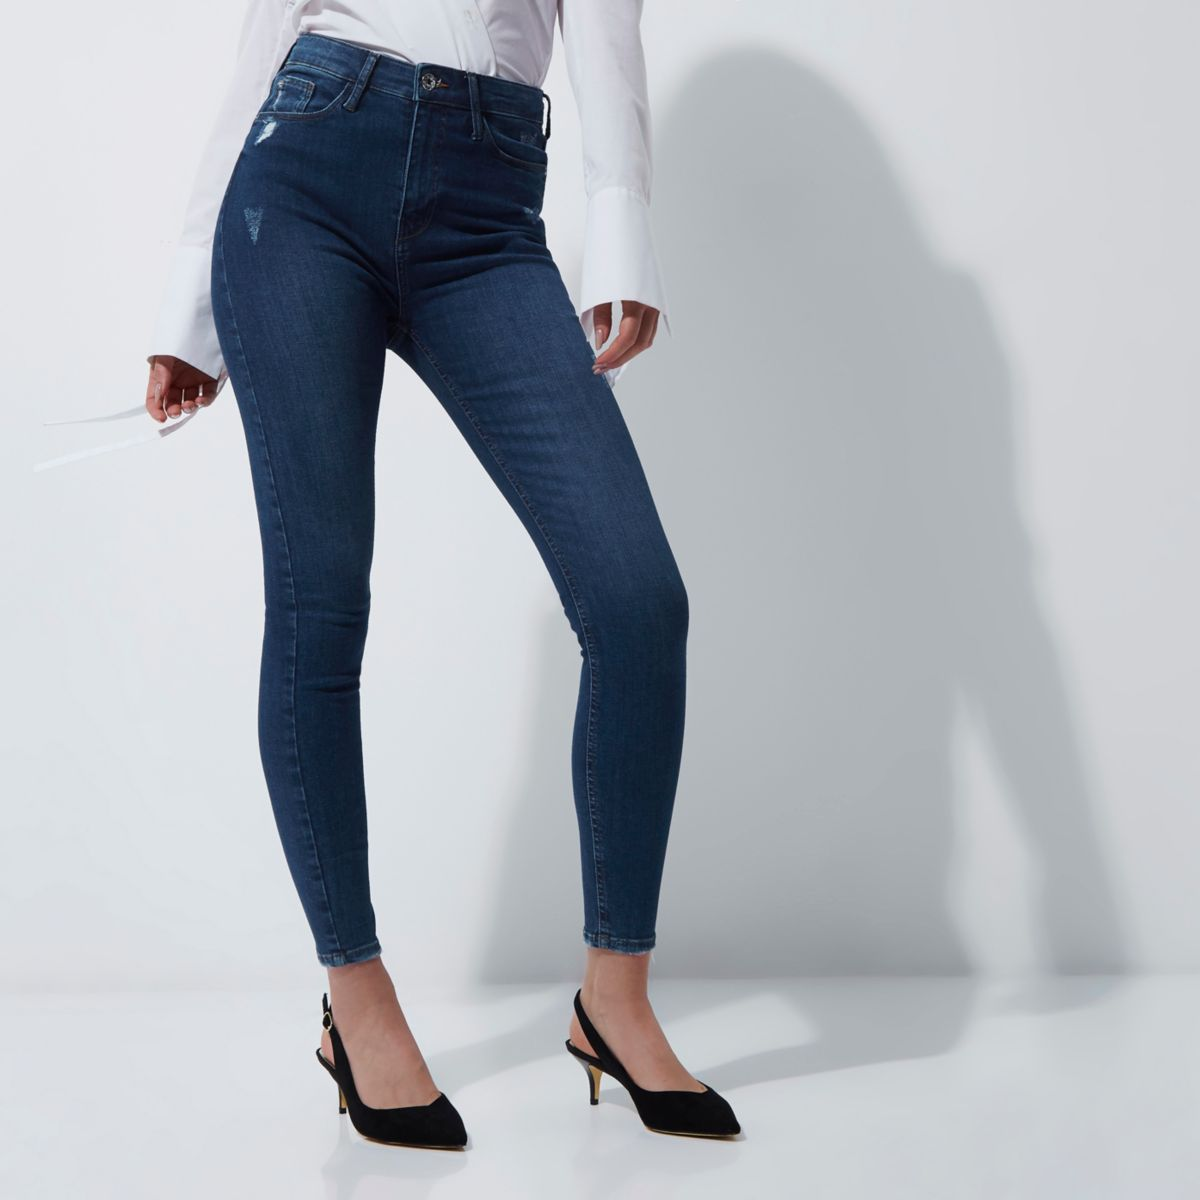 GIRLS JEANS. Jean Legging Extreme Skinny Super Skinny Skinny Mom Jean High-Rise Jeans Jeans All Bottoms Jeans View All Extreme Skinny Jean Legging Super Skinny Classic Stretch Ultra High-Rise Super Skinny Jeans. $ Clearance. Buy One, Get One 50% Off.